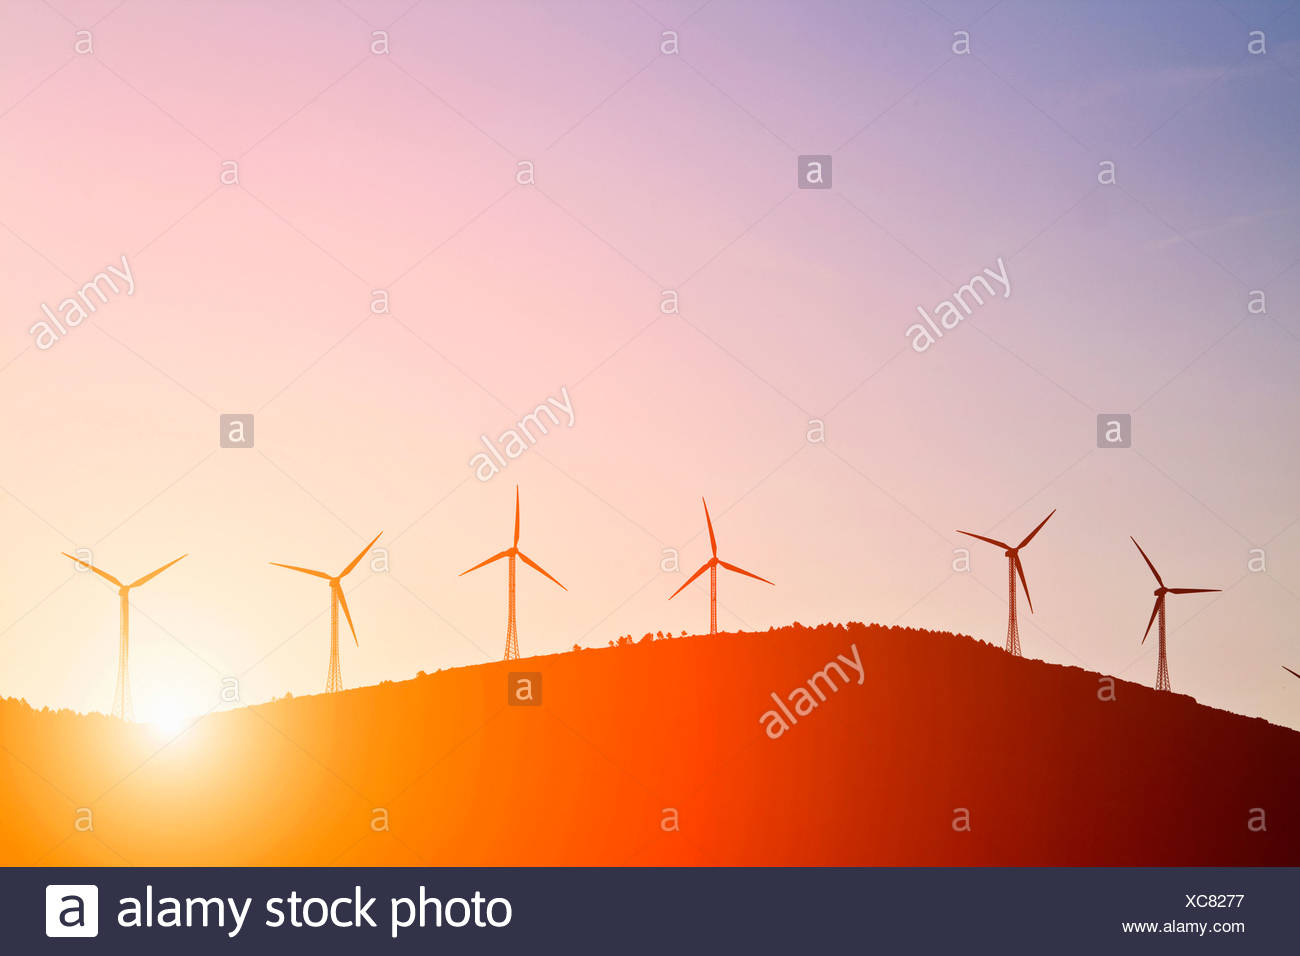 Silhouette of windmills on rural hills - Stock Image